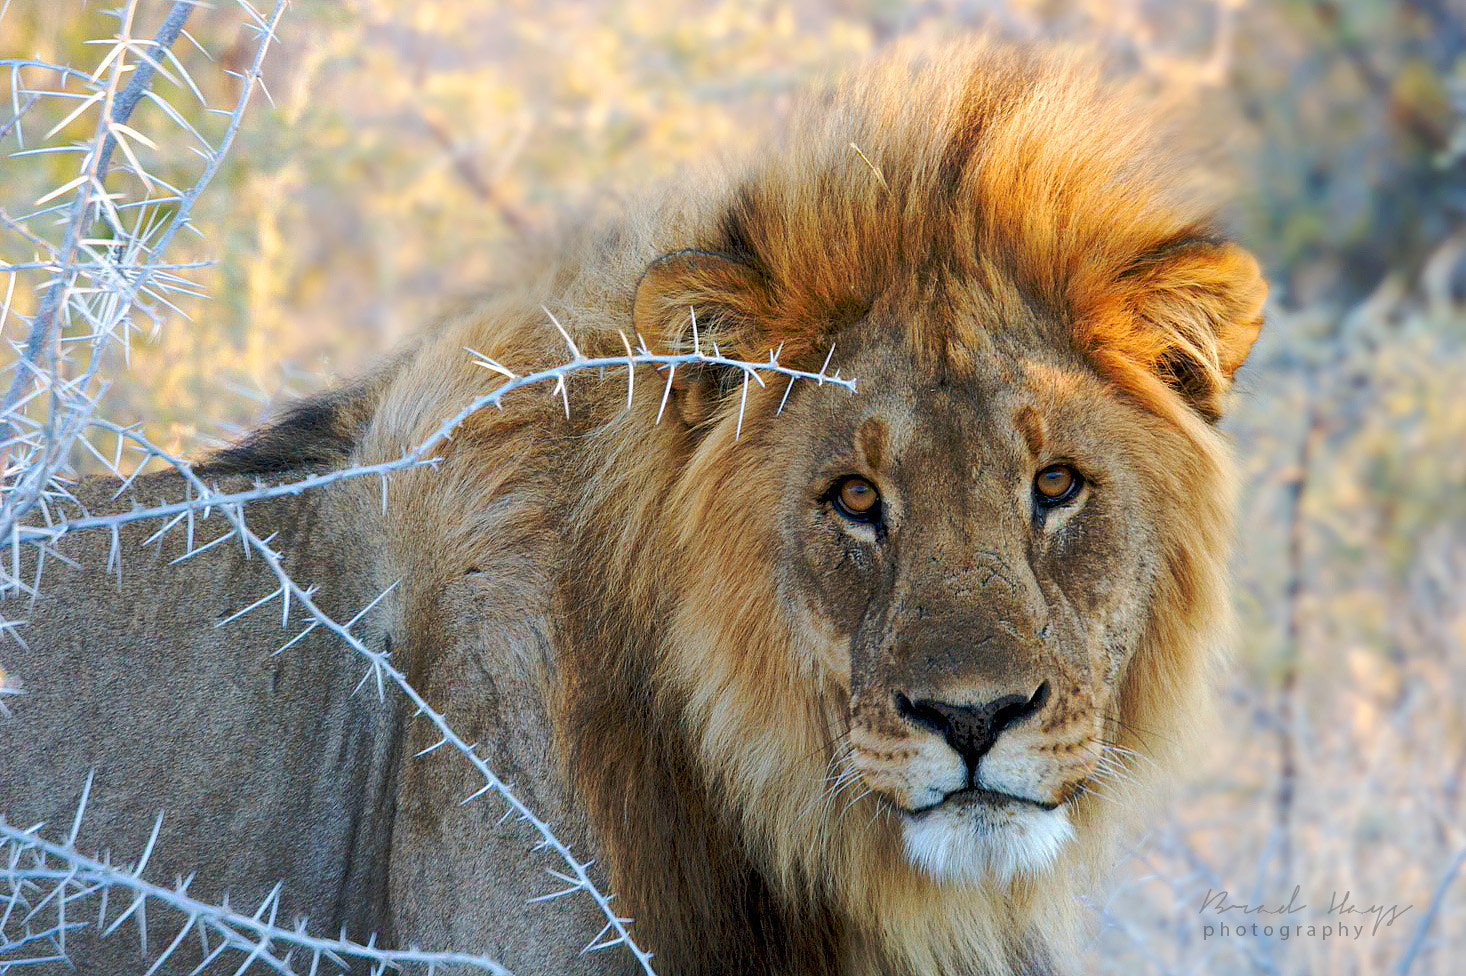 Photograph Wild Namibian Lion by Brad Hays on 500px